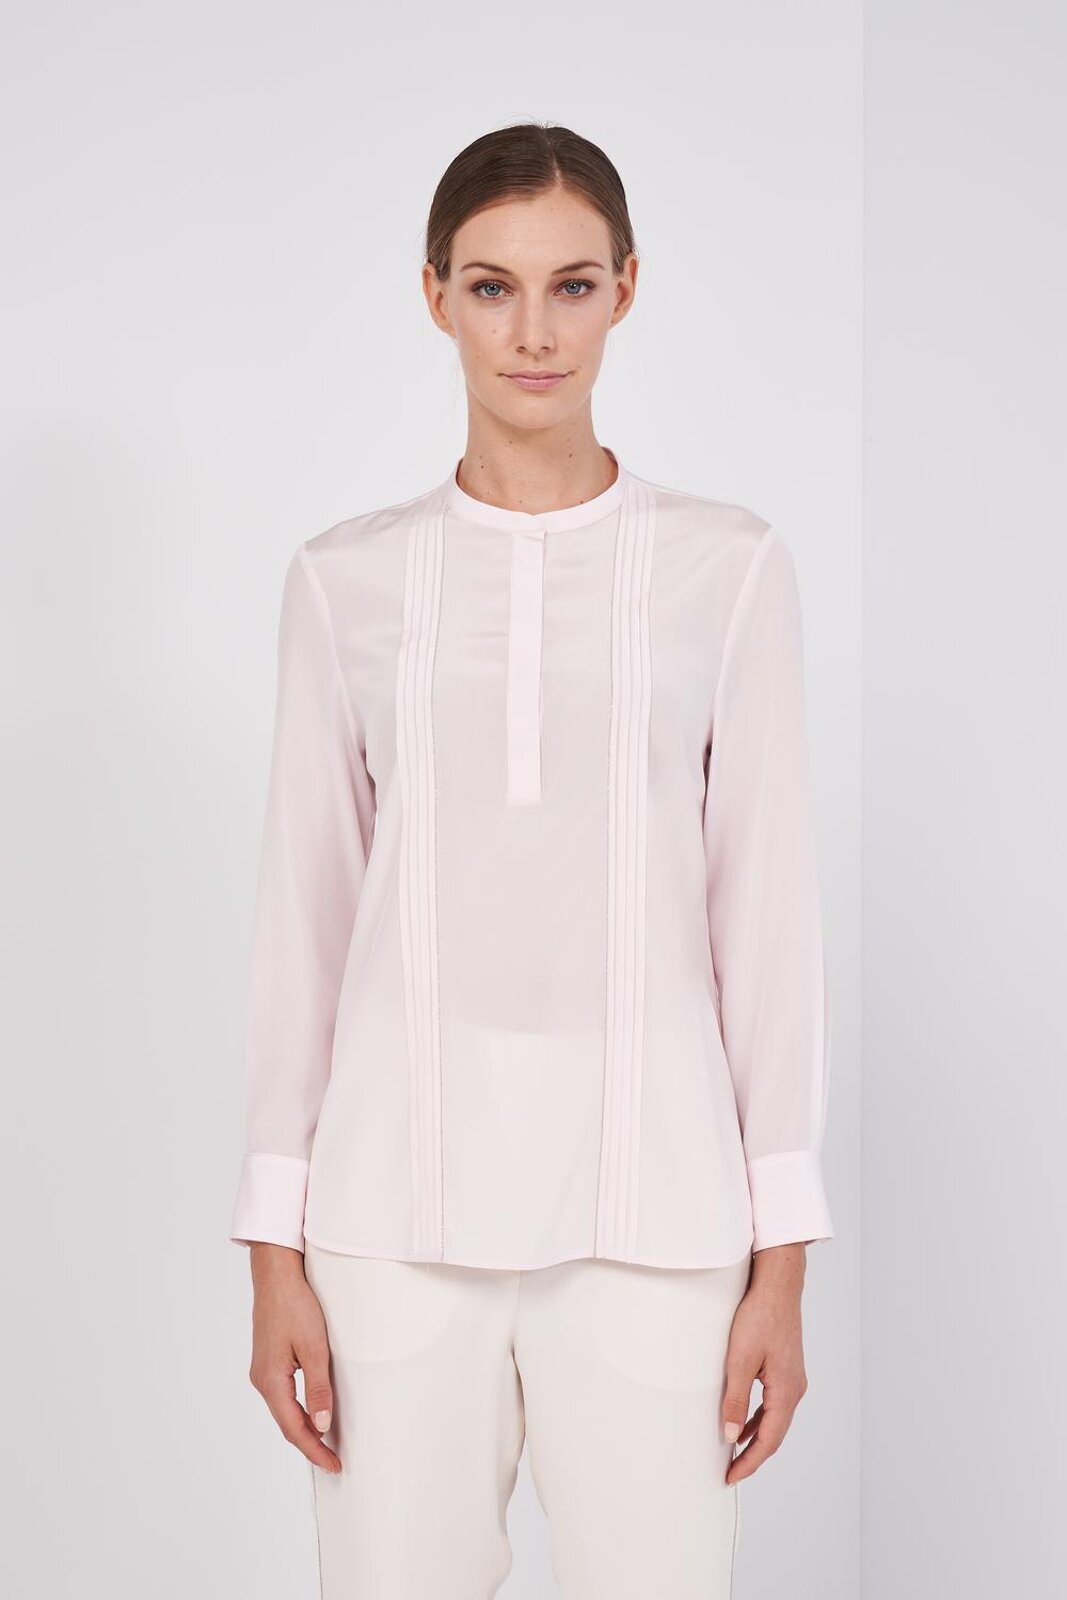 Slightly Stretch Silk Crepe Long Sleeve Shirt. 'Mandarin' collar with button closure on the back, details worked on the front with light points. Regular fit. - Peserico